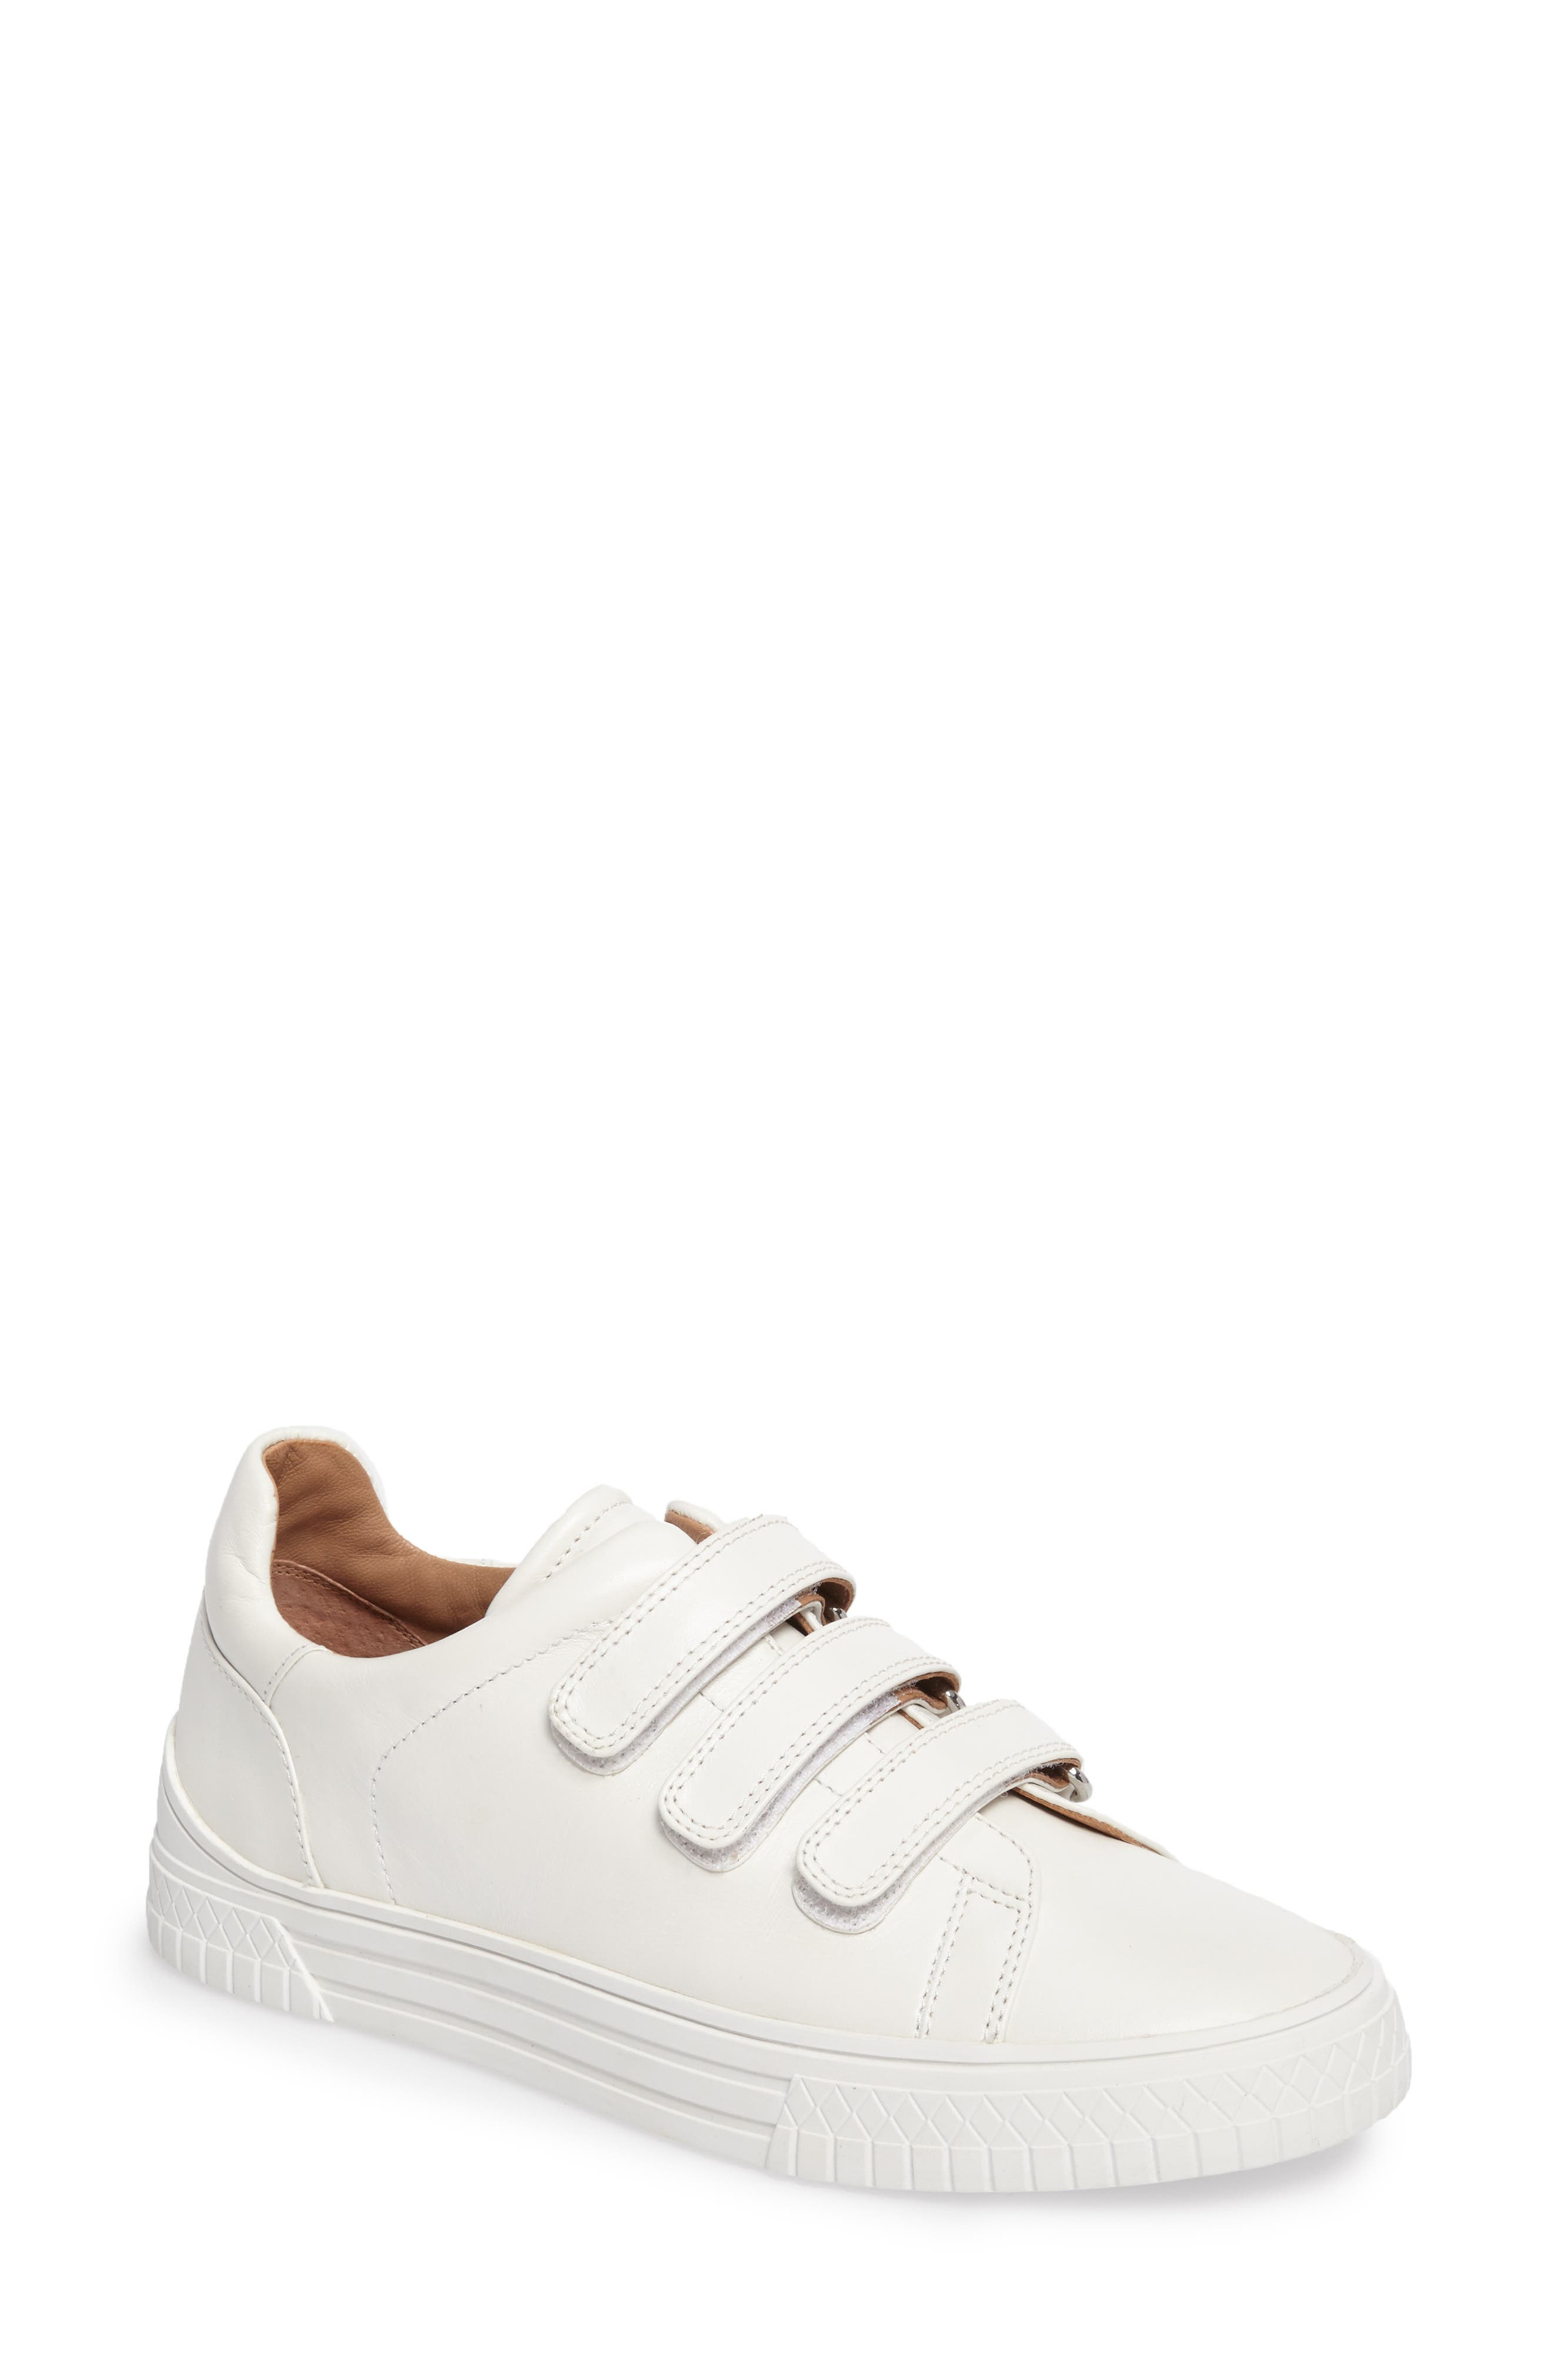 Grace Sneaker,                         Main,                         color, White Leather